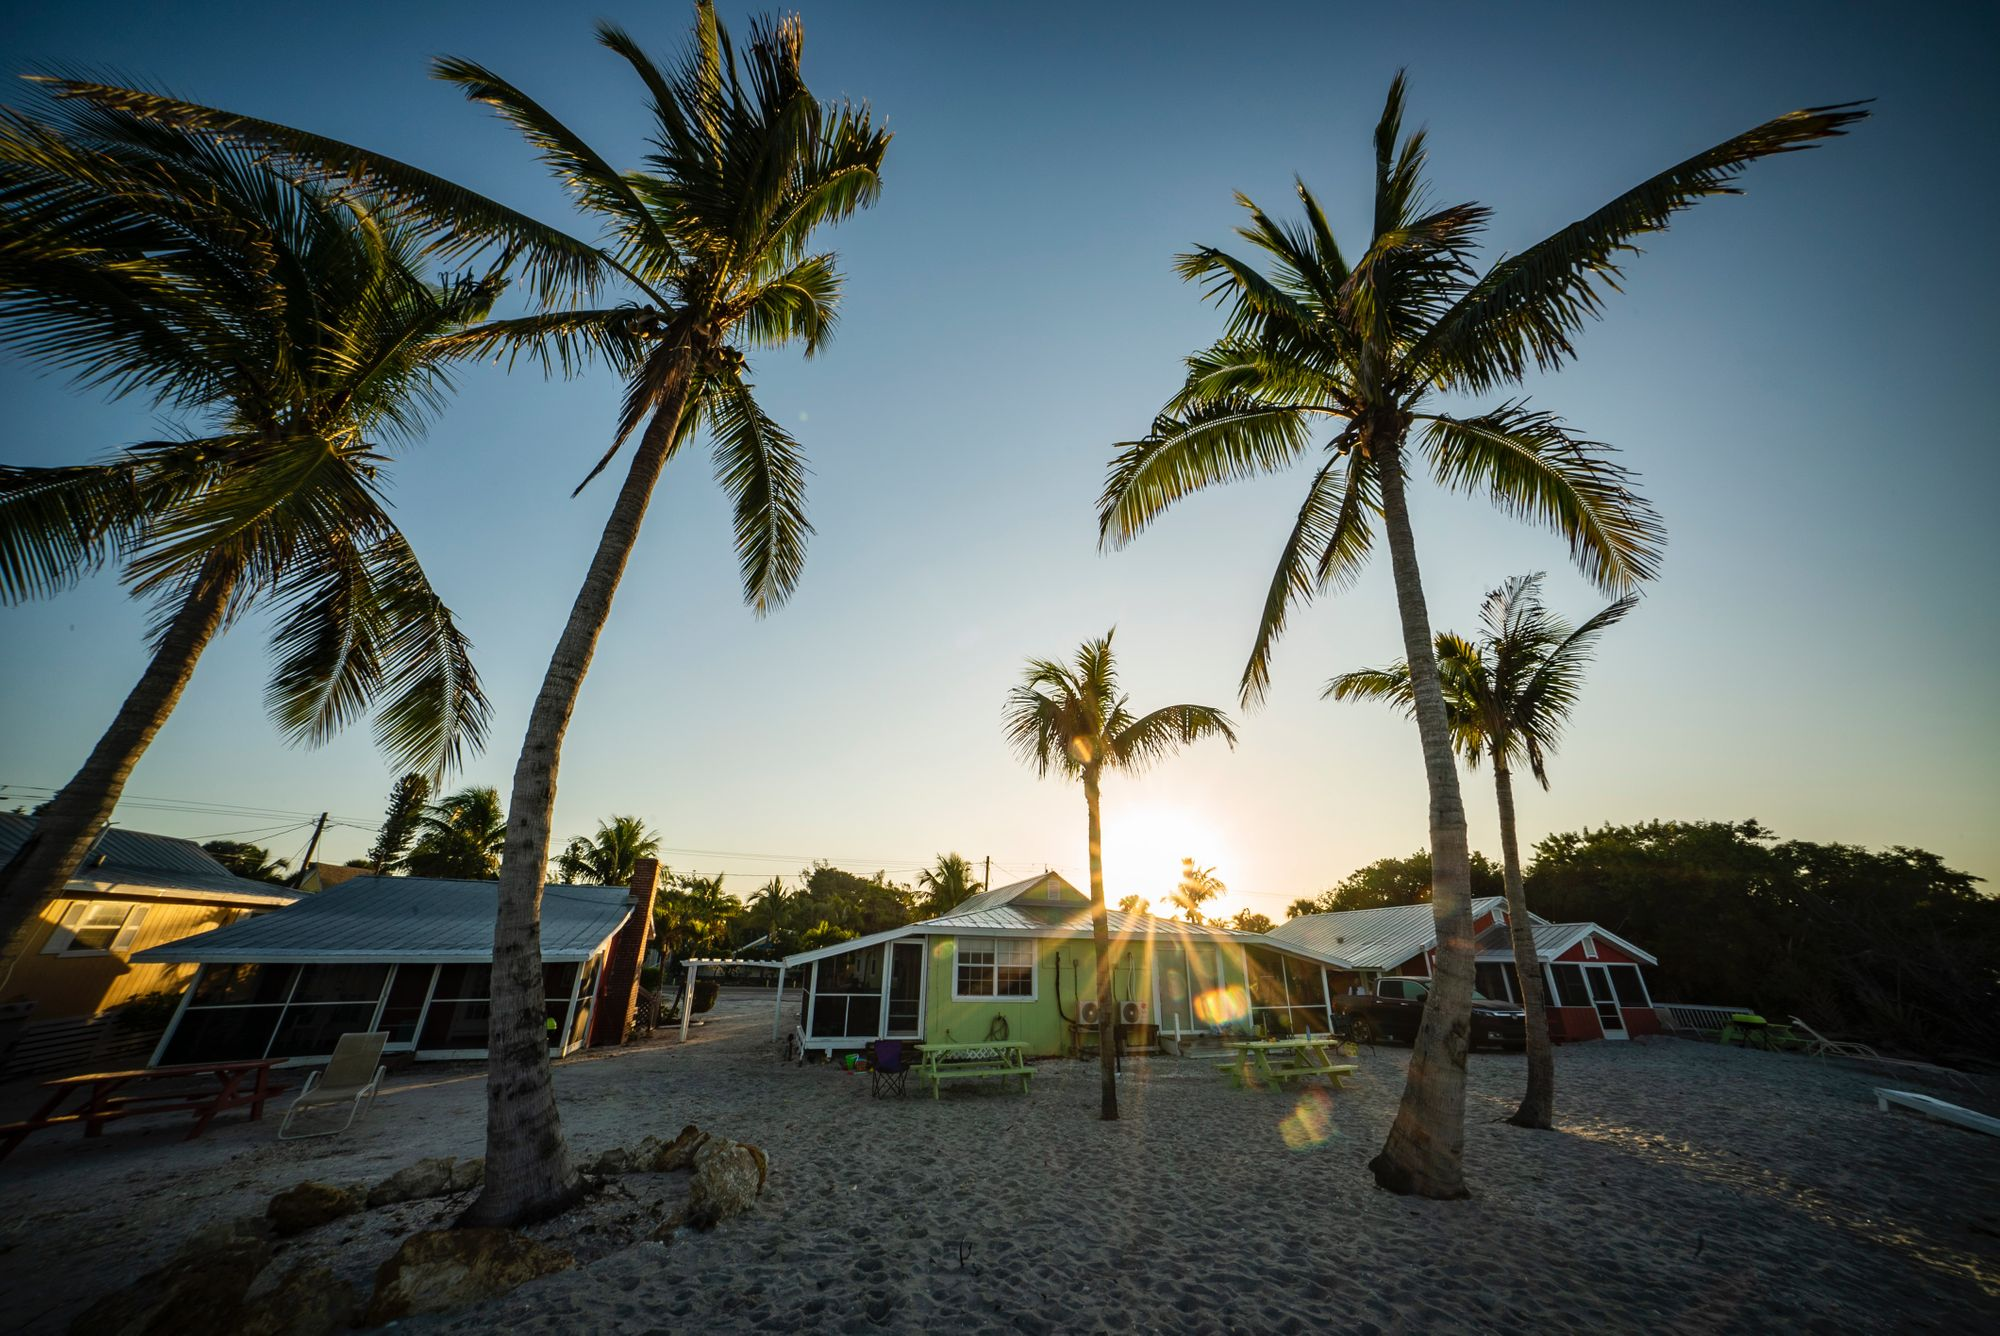 Places to stay on beachfront in Sanibel Florida